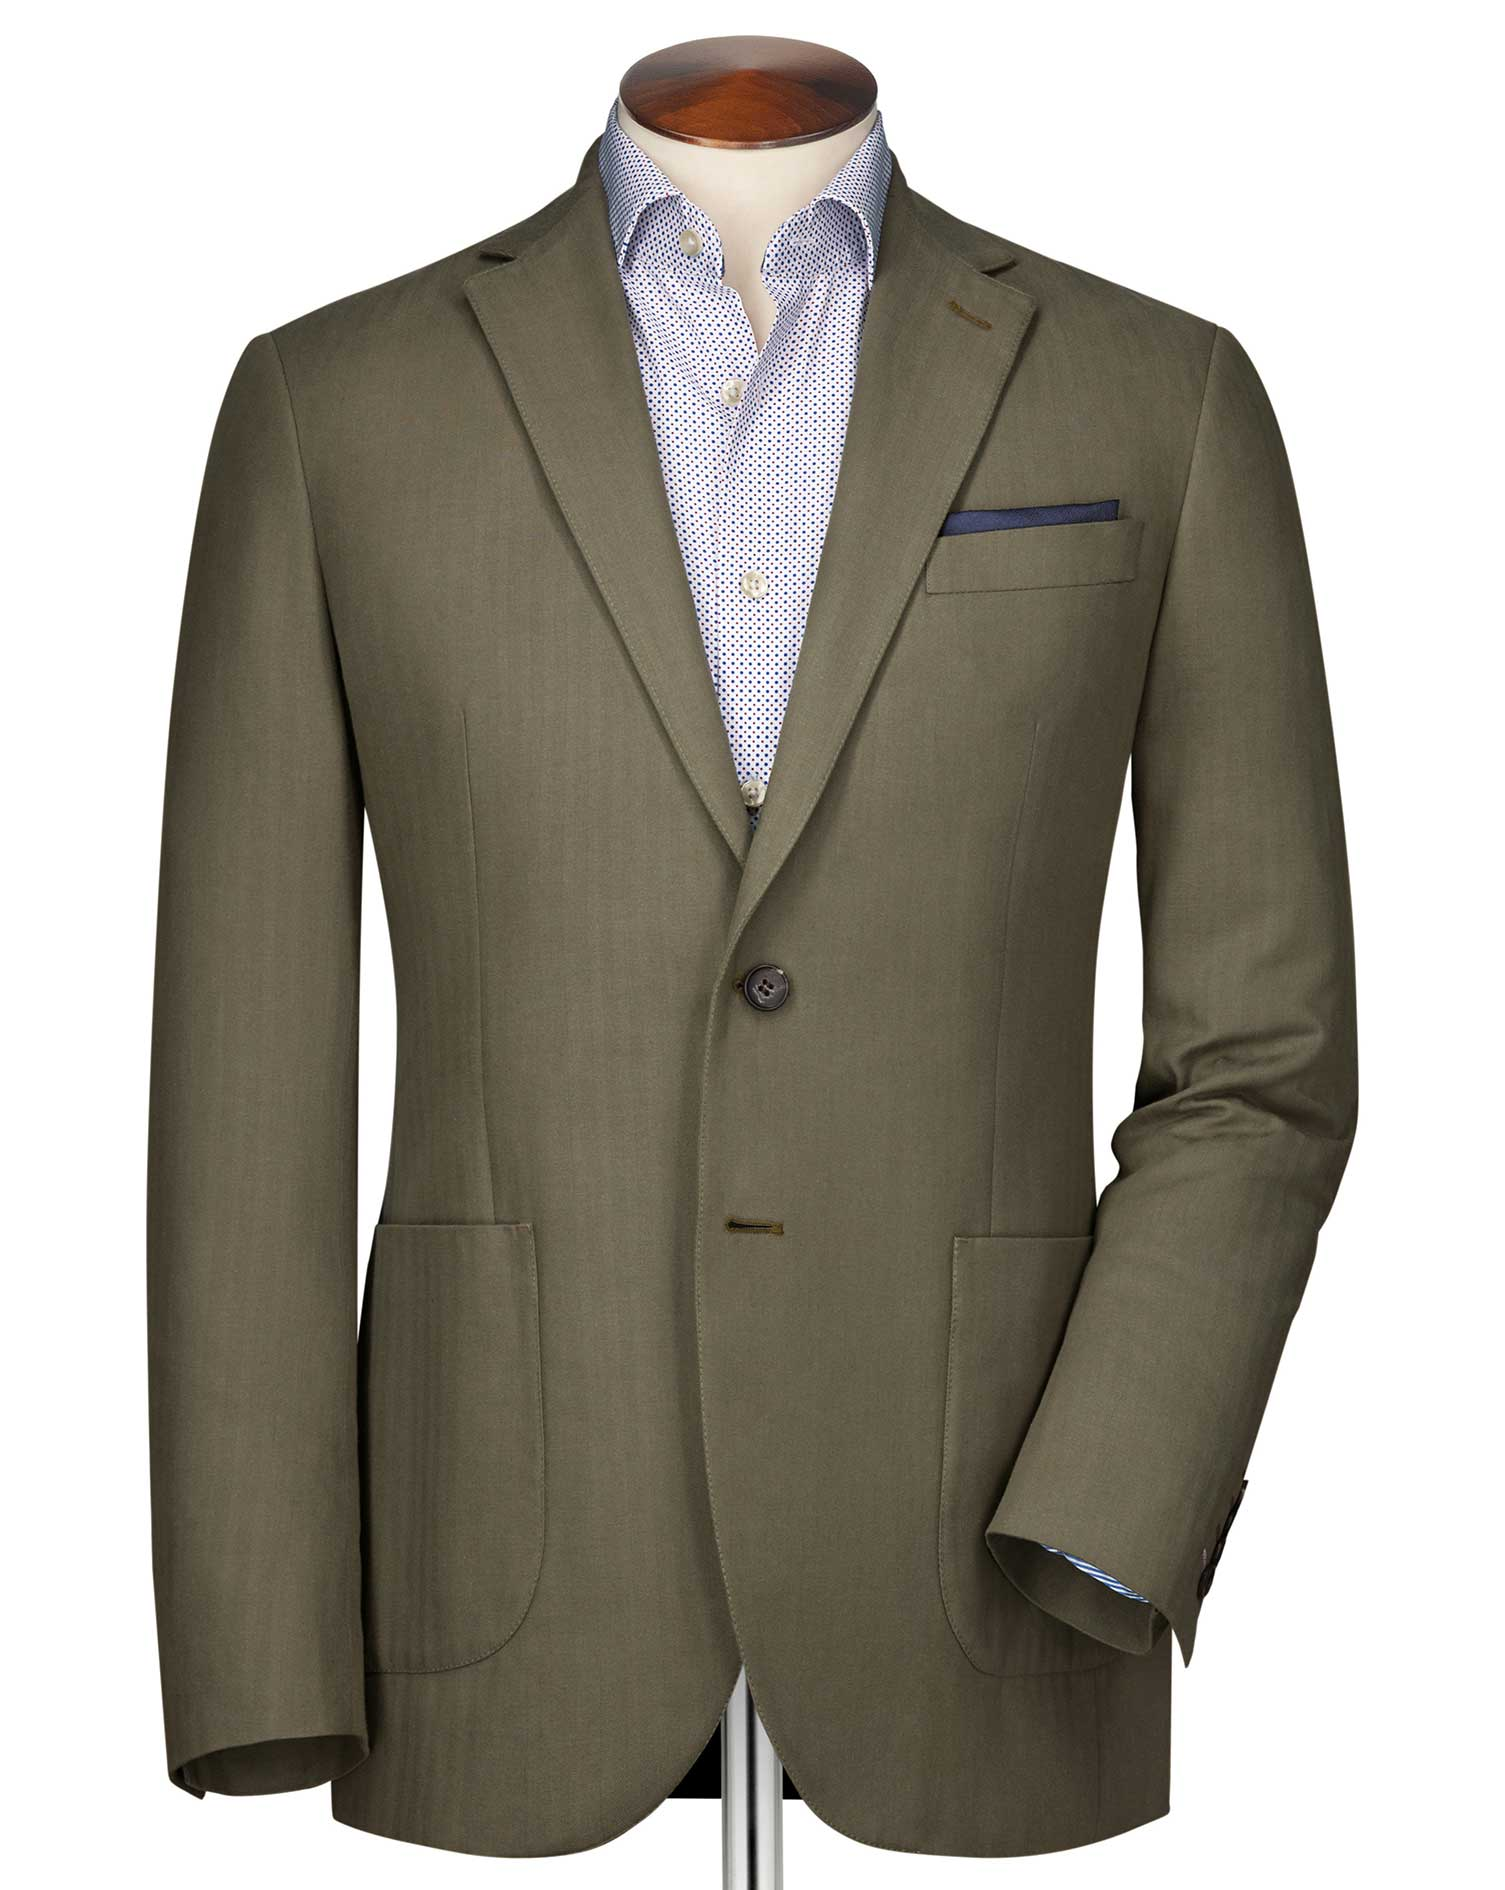 Slim Fit Khaki Herringbone Cotton Jacket Size 46 Regular by Charles Tyrwhitt